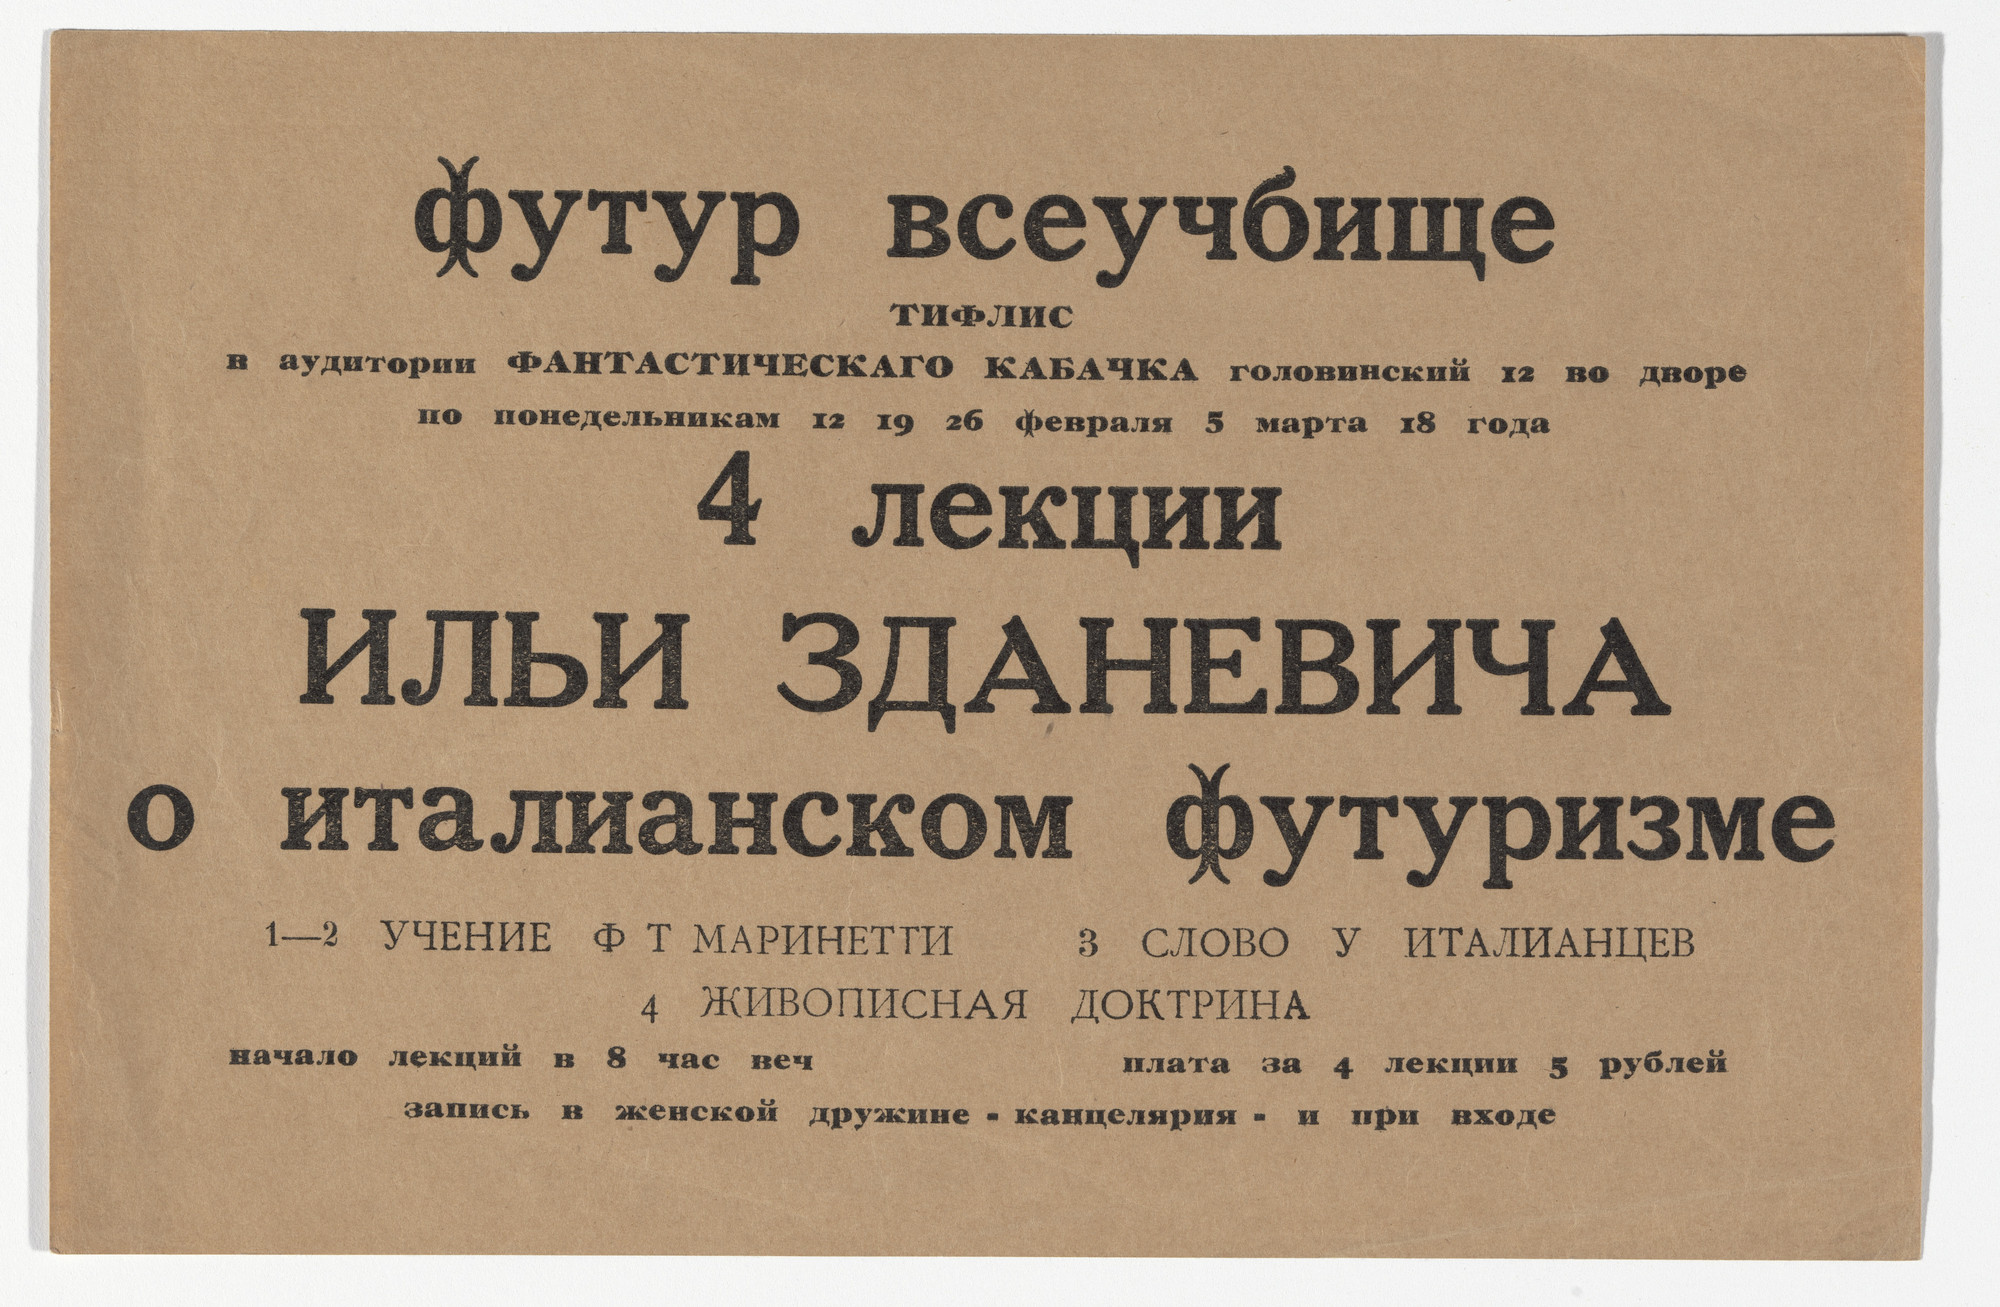 Il'ia Zdanevich. Announcement for a series of lectures on Italian Futurism to be delivered by Il'ia Zdanevich at the Fantastic Tavern in Tiflis. 1918